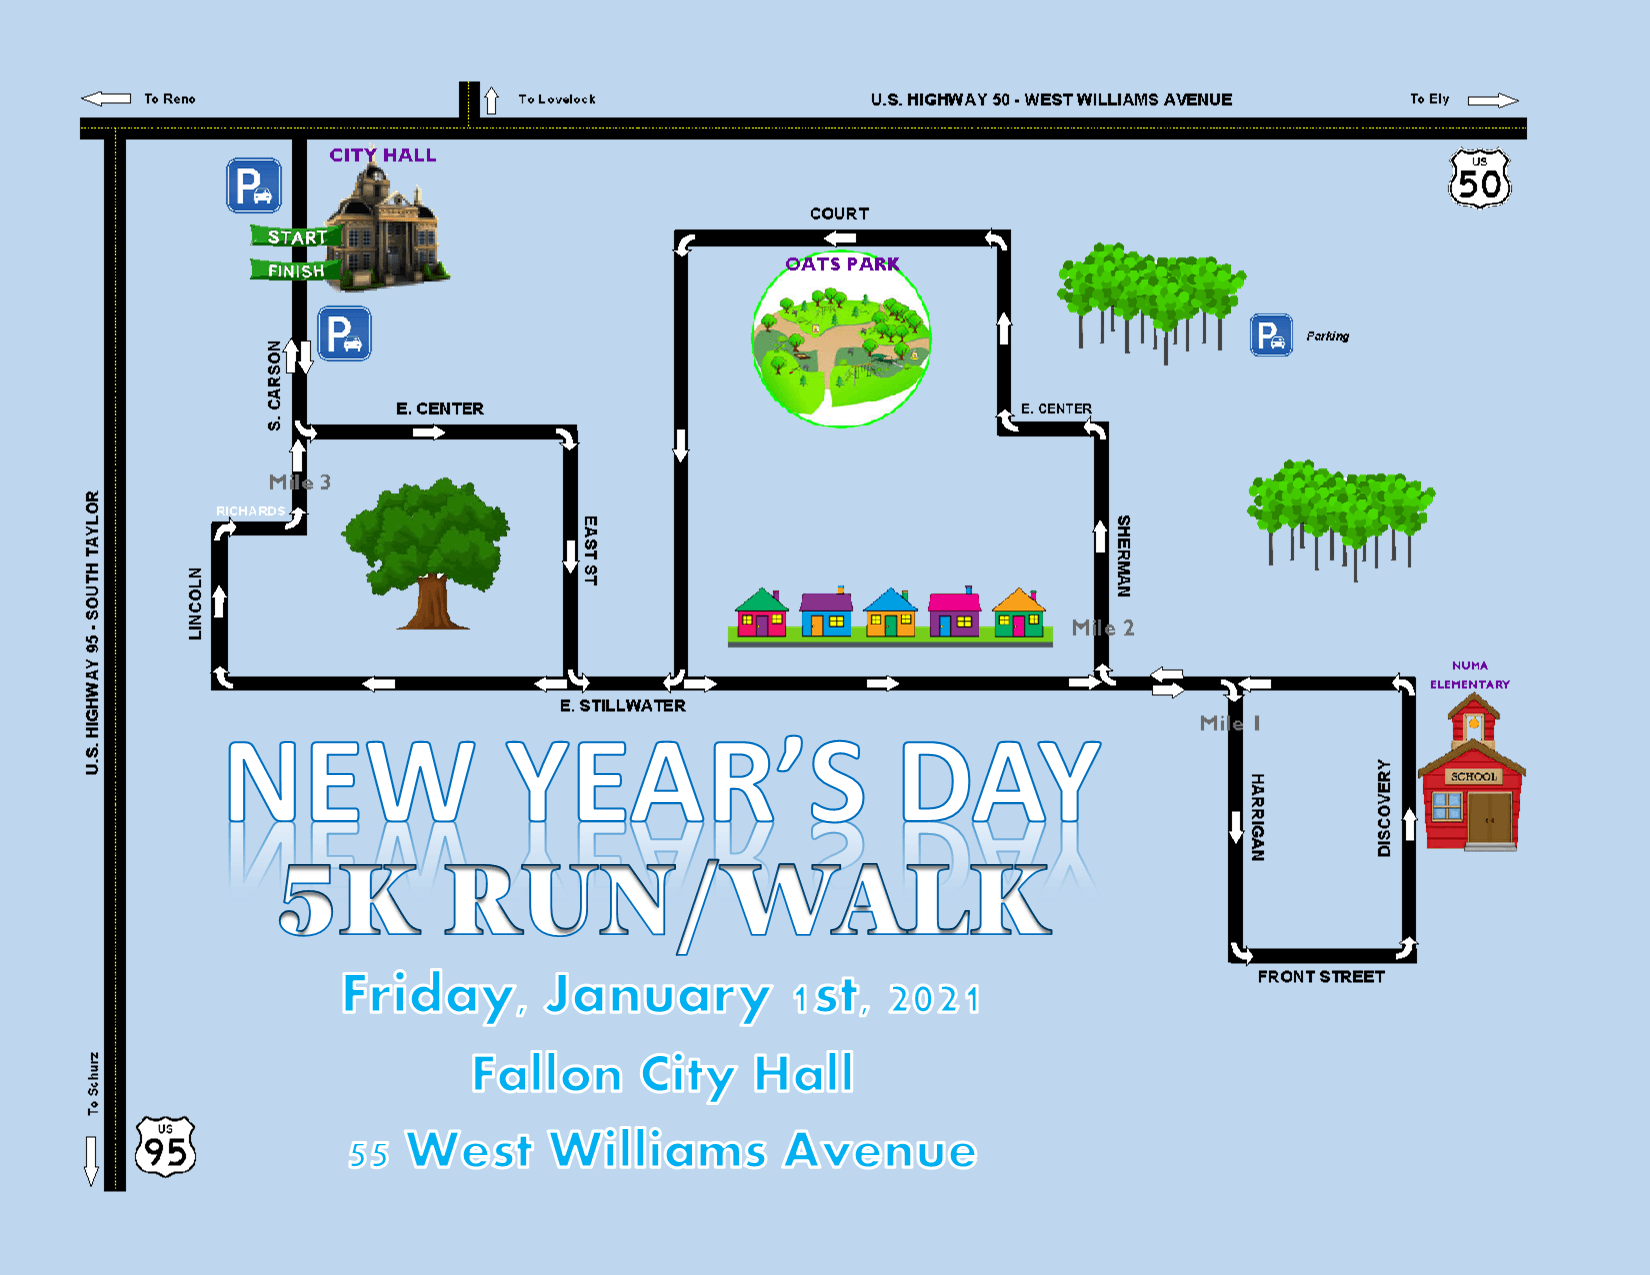 New Year's 5K Run/Walk Course Map - shows route for New Year's 5K Race on Wednesday, January 1